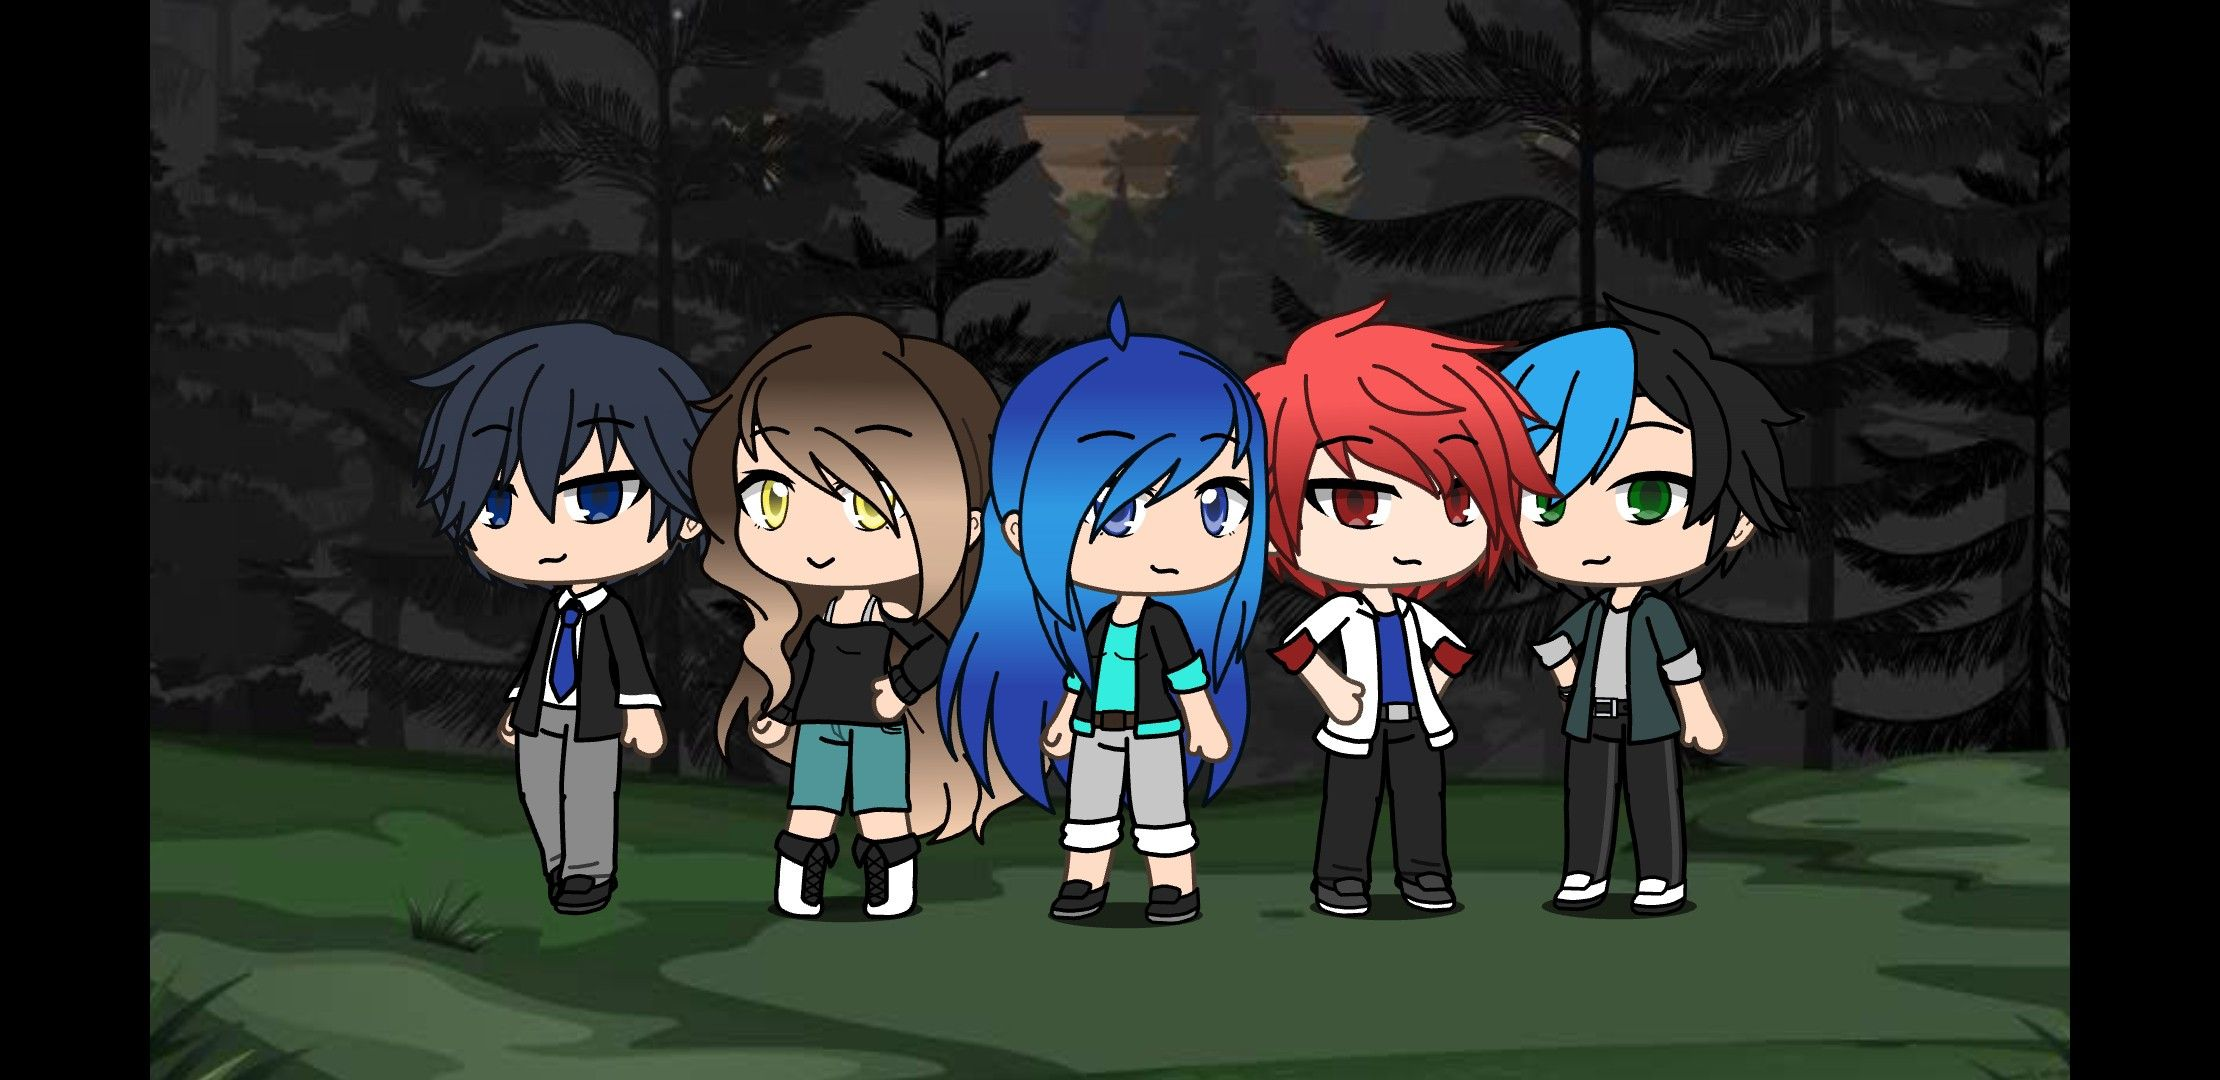 Itsfunneh Yandere Minecraft As Gacha And I Tried My Best To Make It Look Like Them But I Think It Looks Great Kawaii Girl Drawings Yandere Kawaii Girl